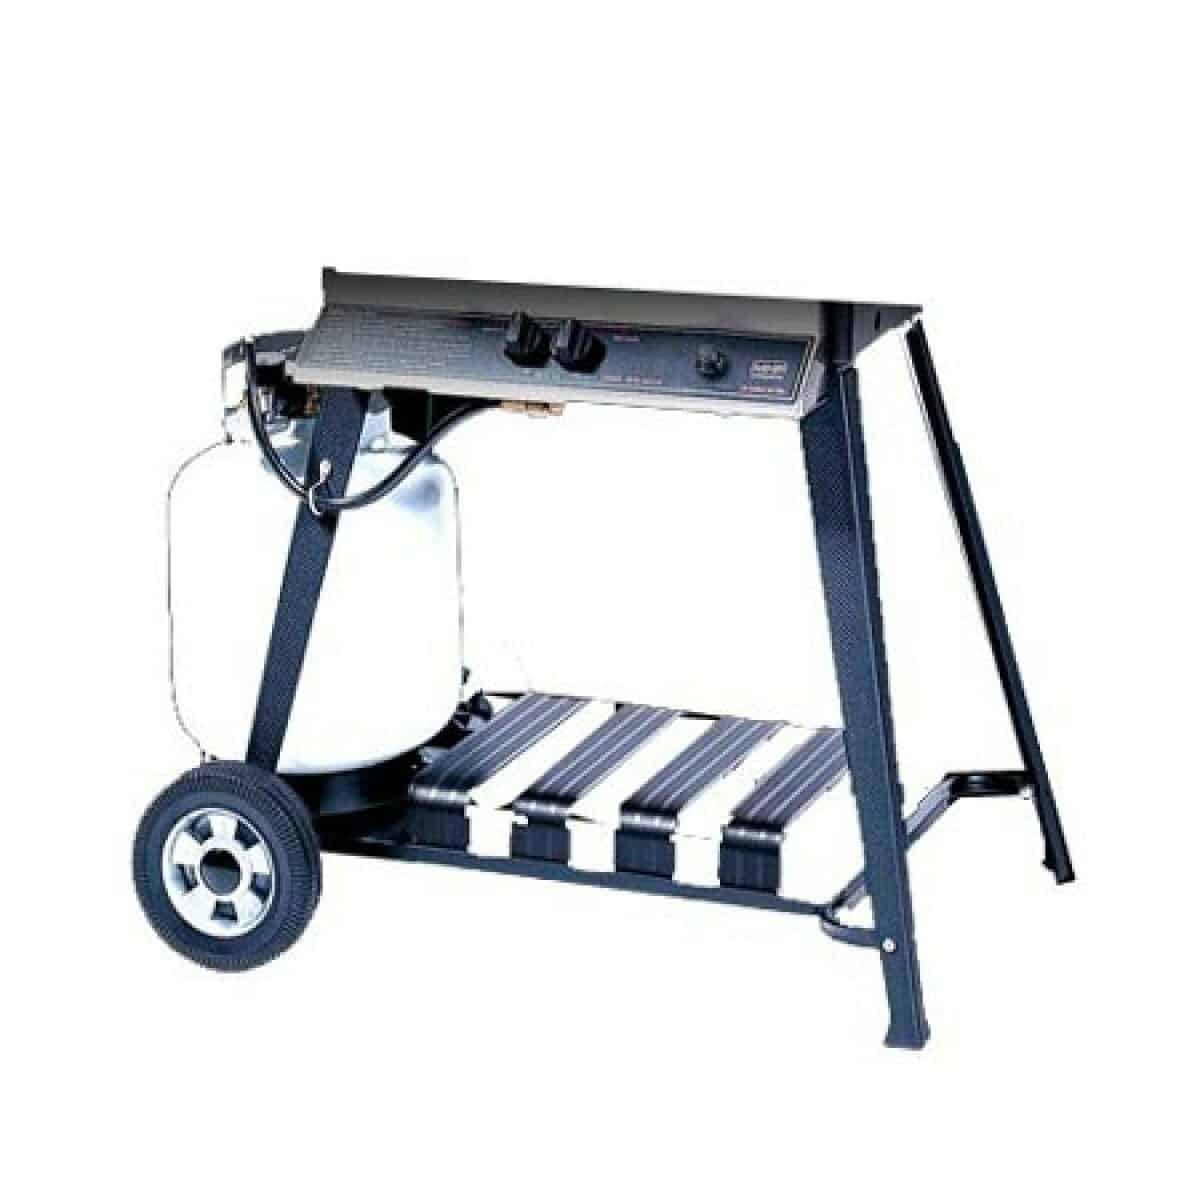 JCP4, 4 Legged Cart for JNR